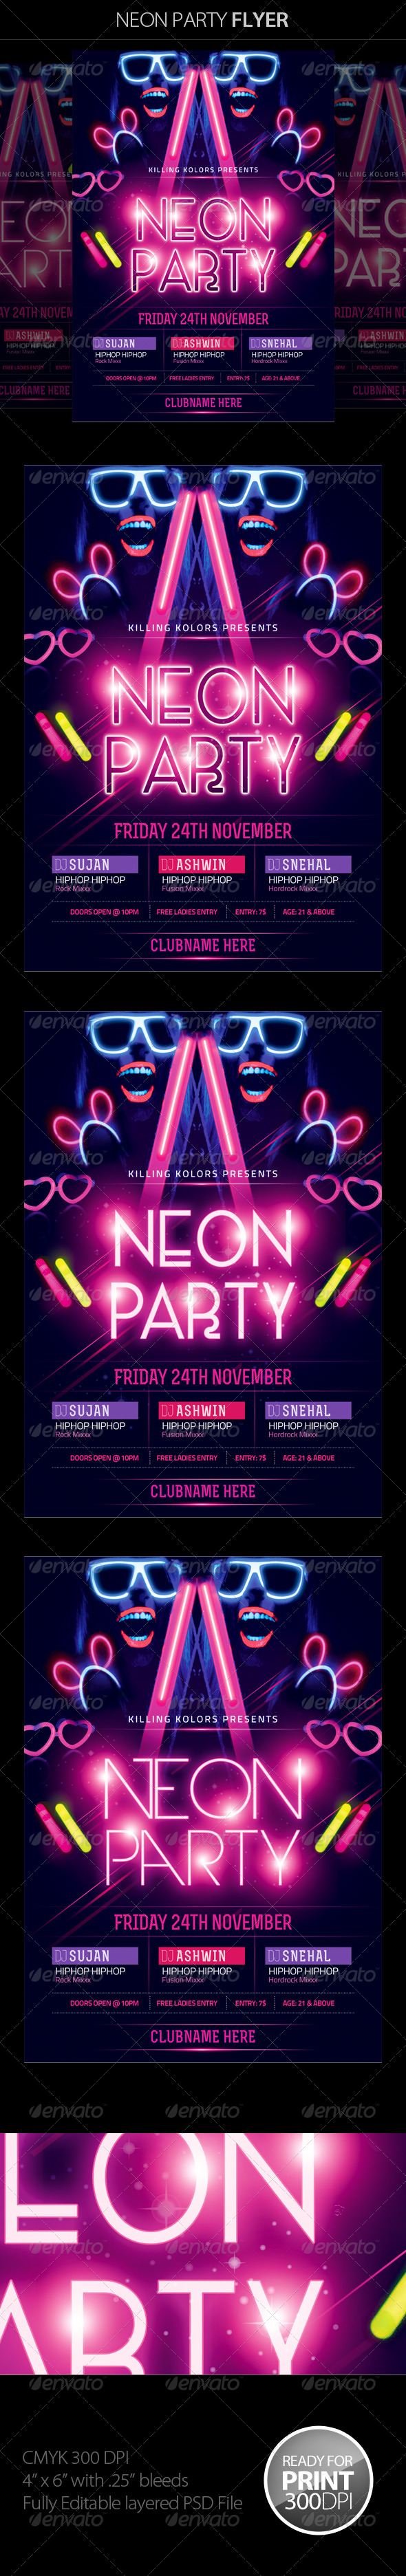 GraphicRiver Neon Glow Party Flyer 8620238